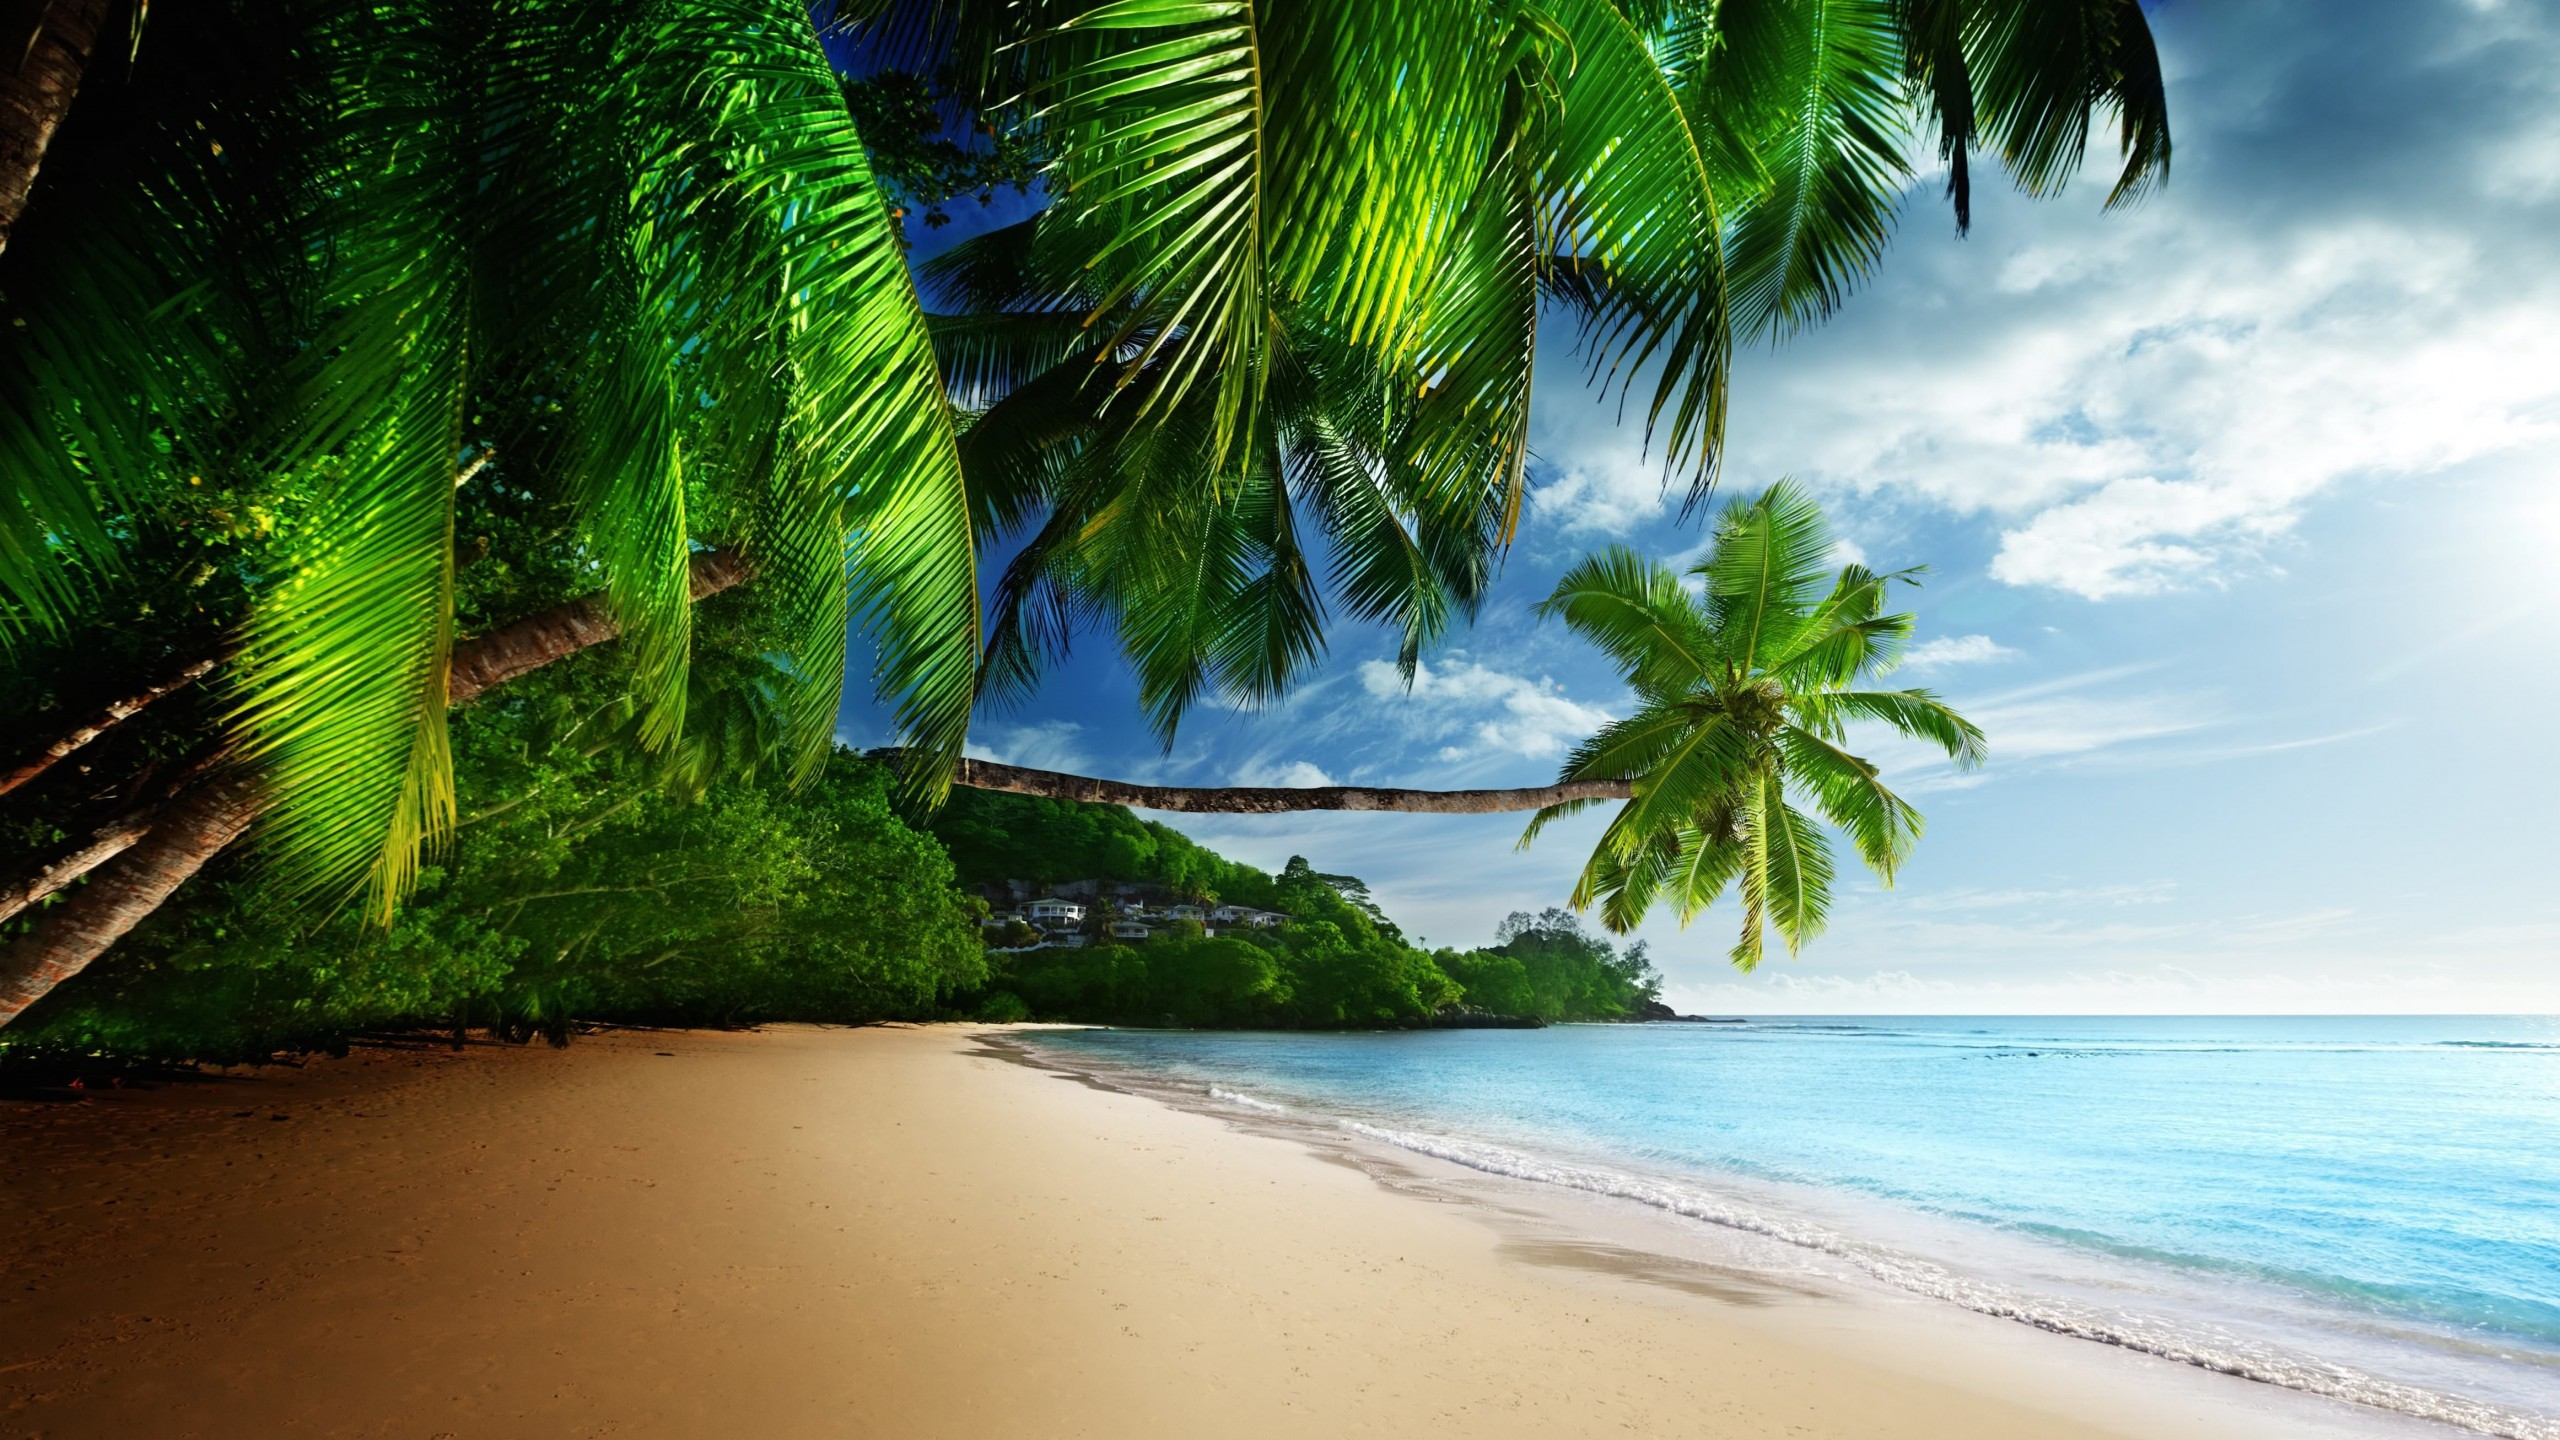 Tropical Paradise Beach Wallpaper for Social Media YouTube Channel Art